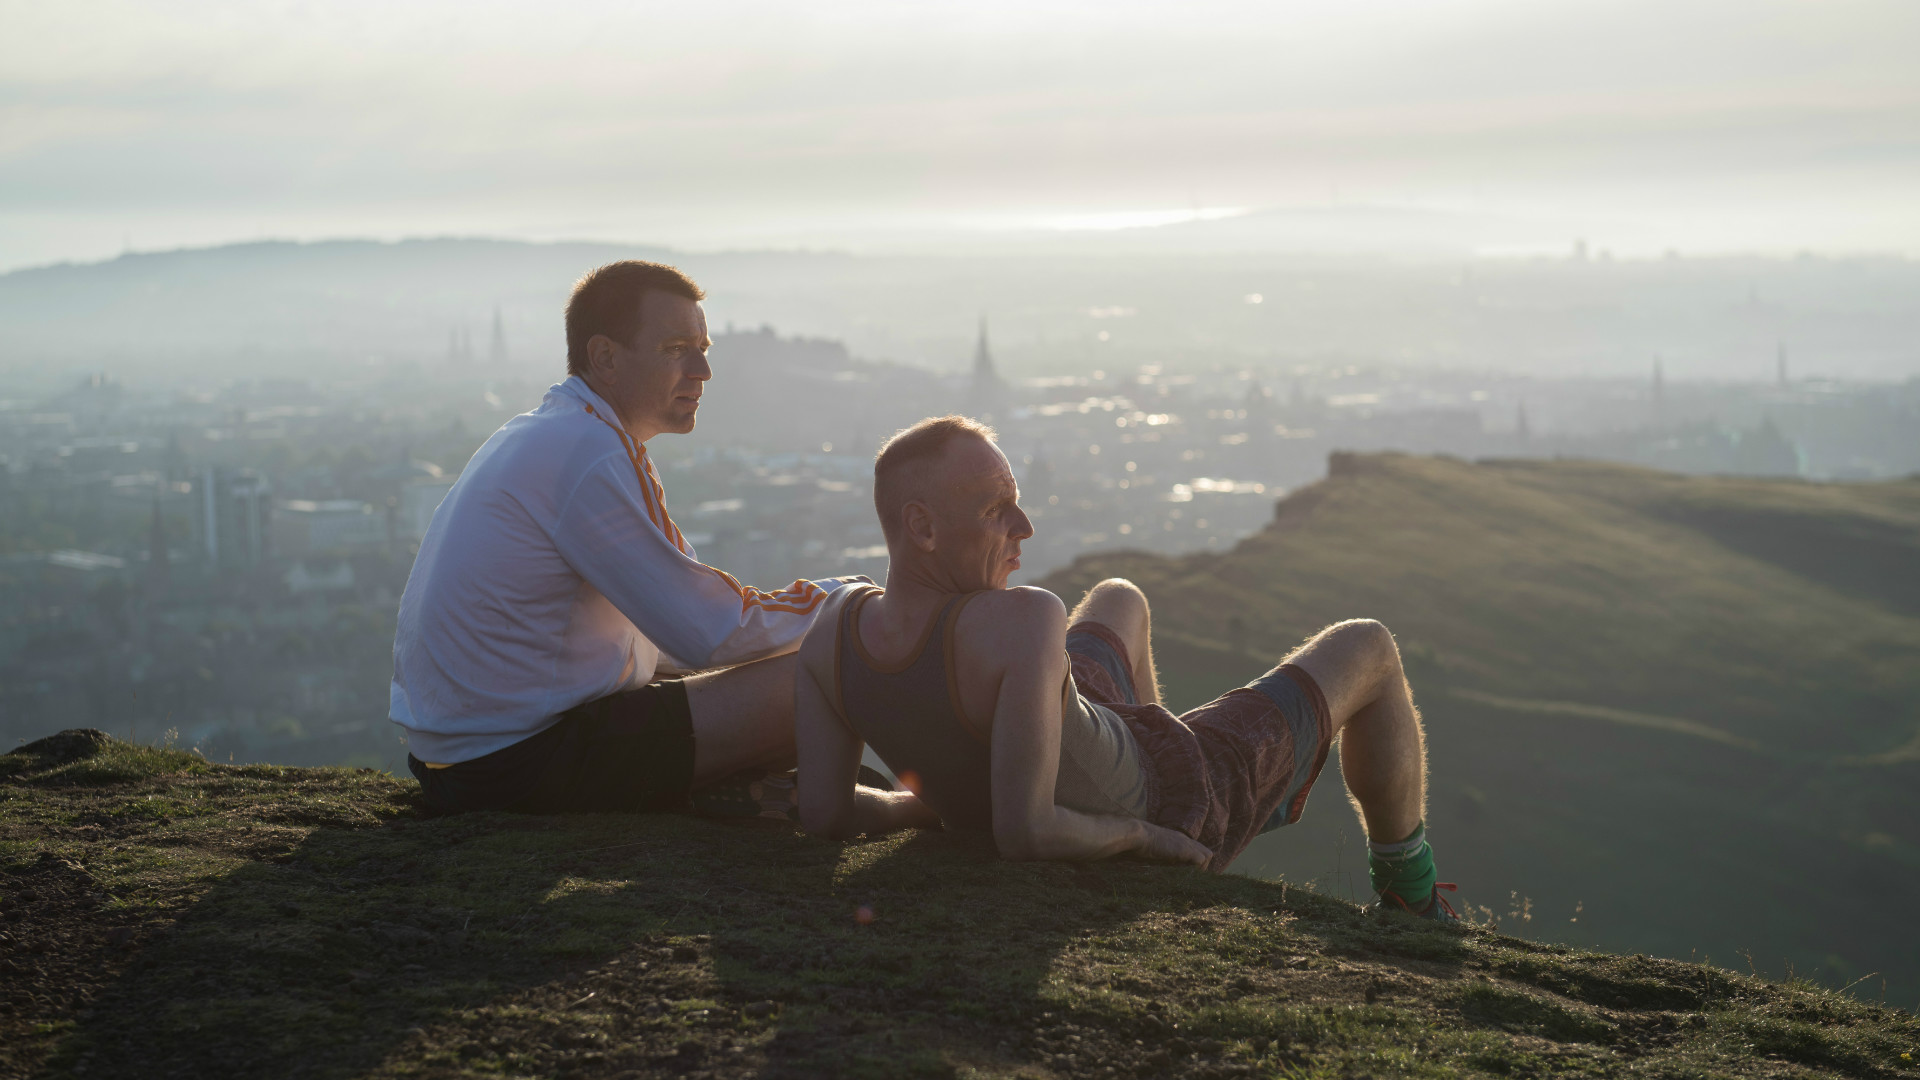 Mark and Spud in T2 Trainspotting